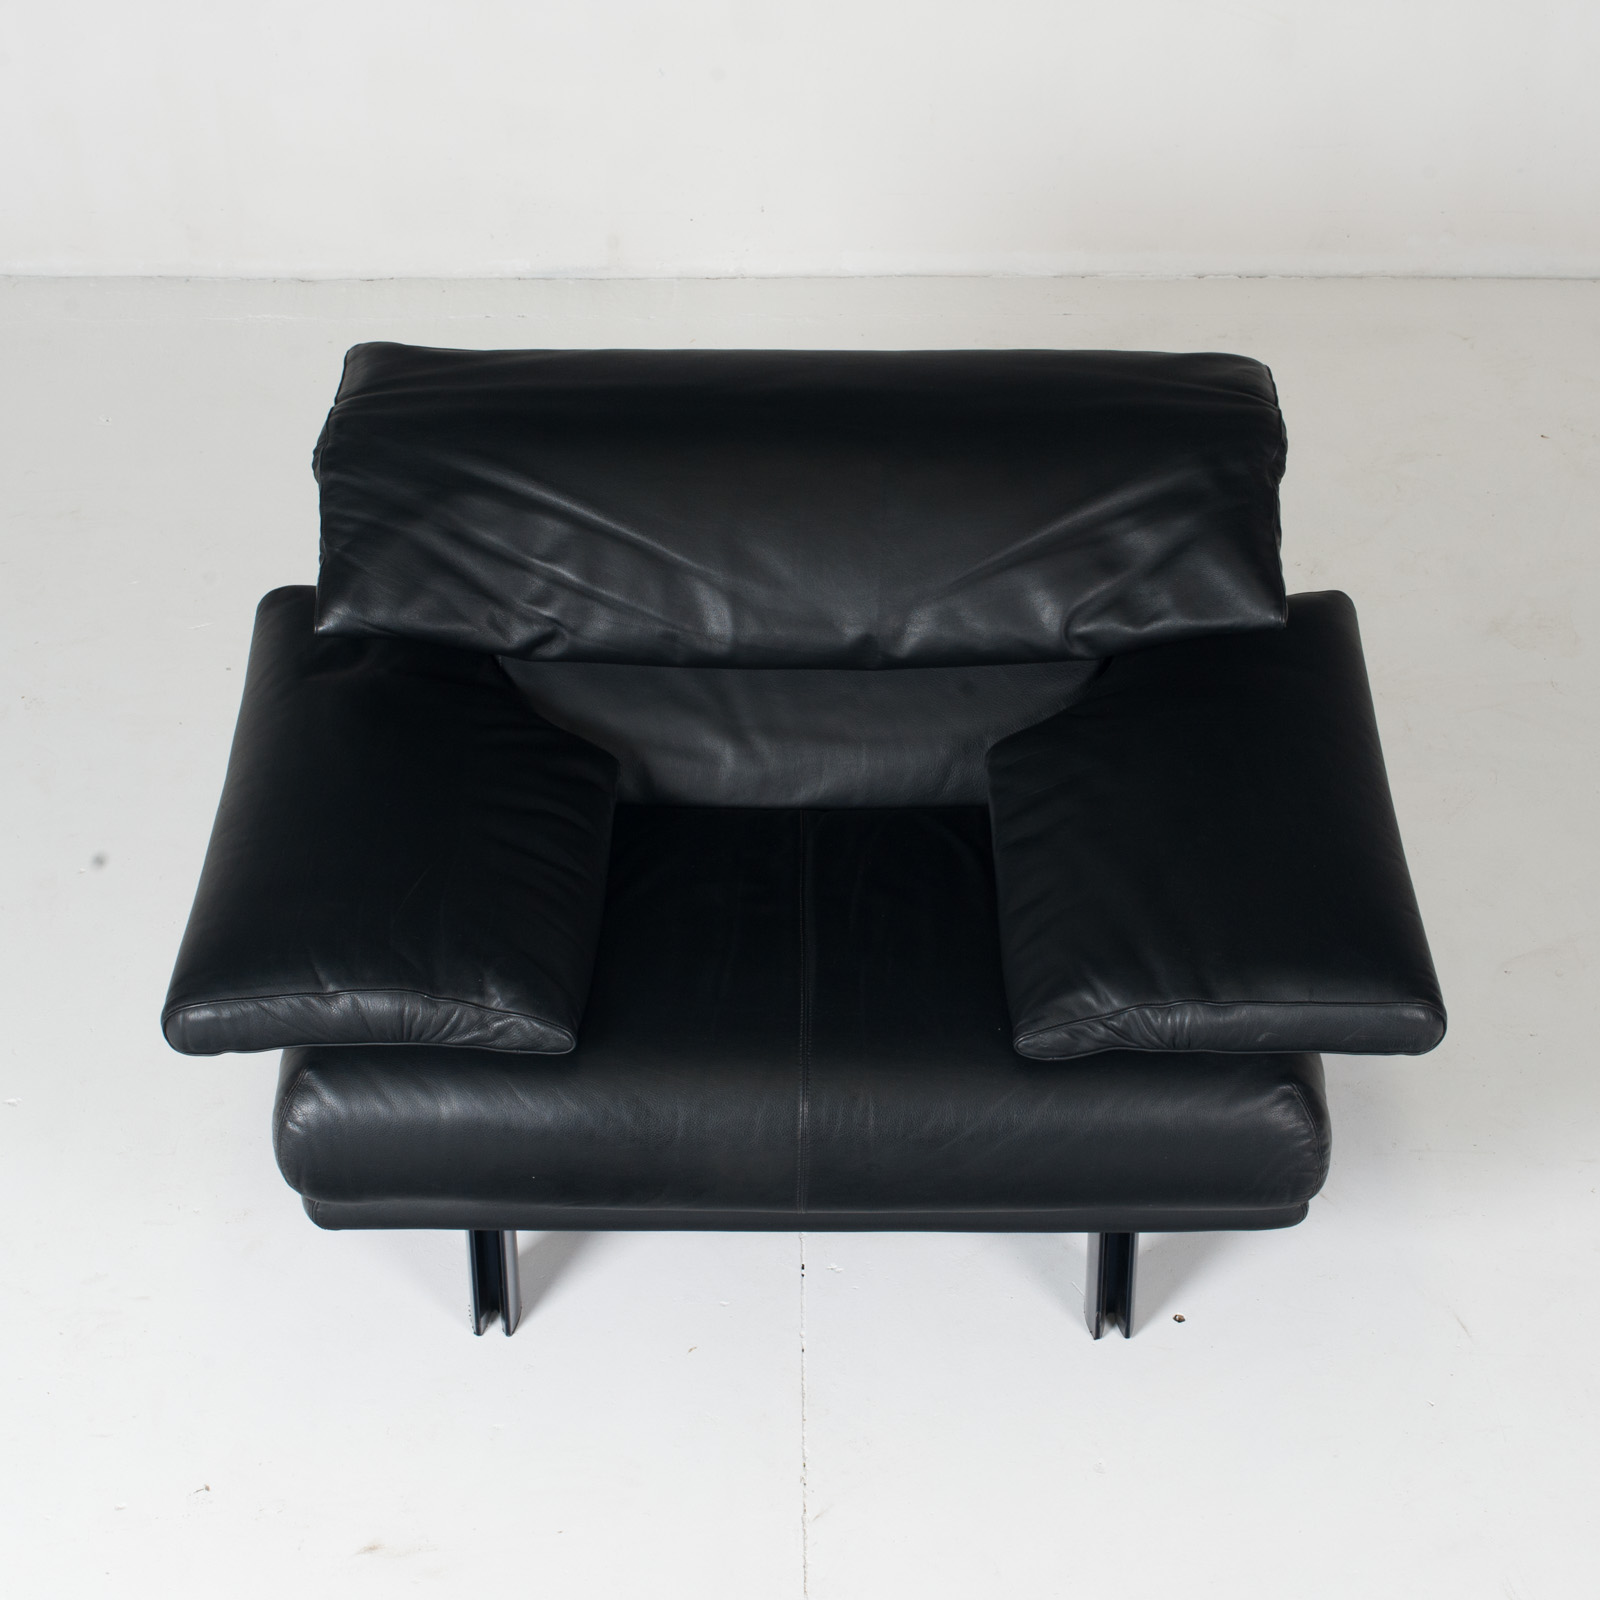 Alanda Armchair By Paolo Piva For B&b Italia In Black Leather, 1980s, Italy 3